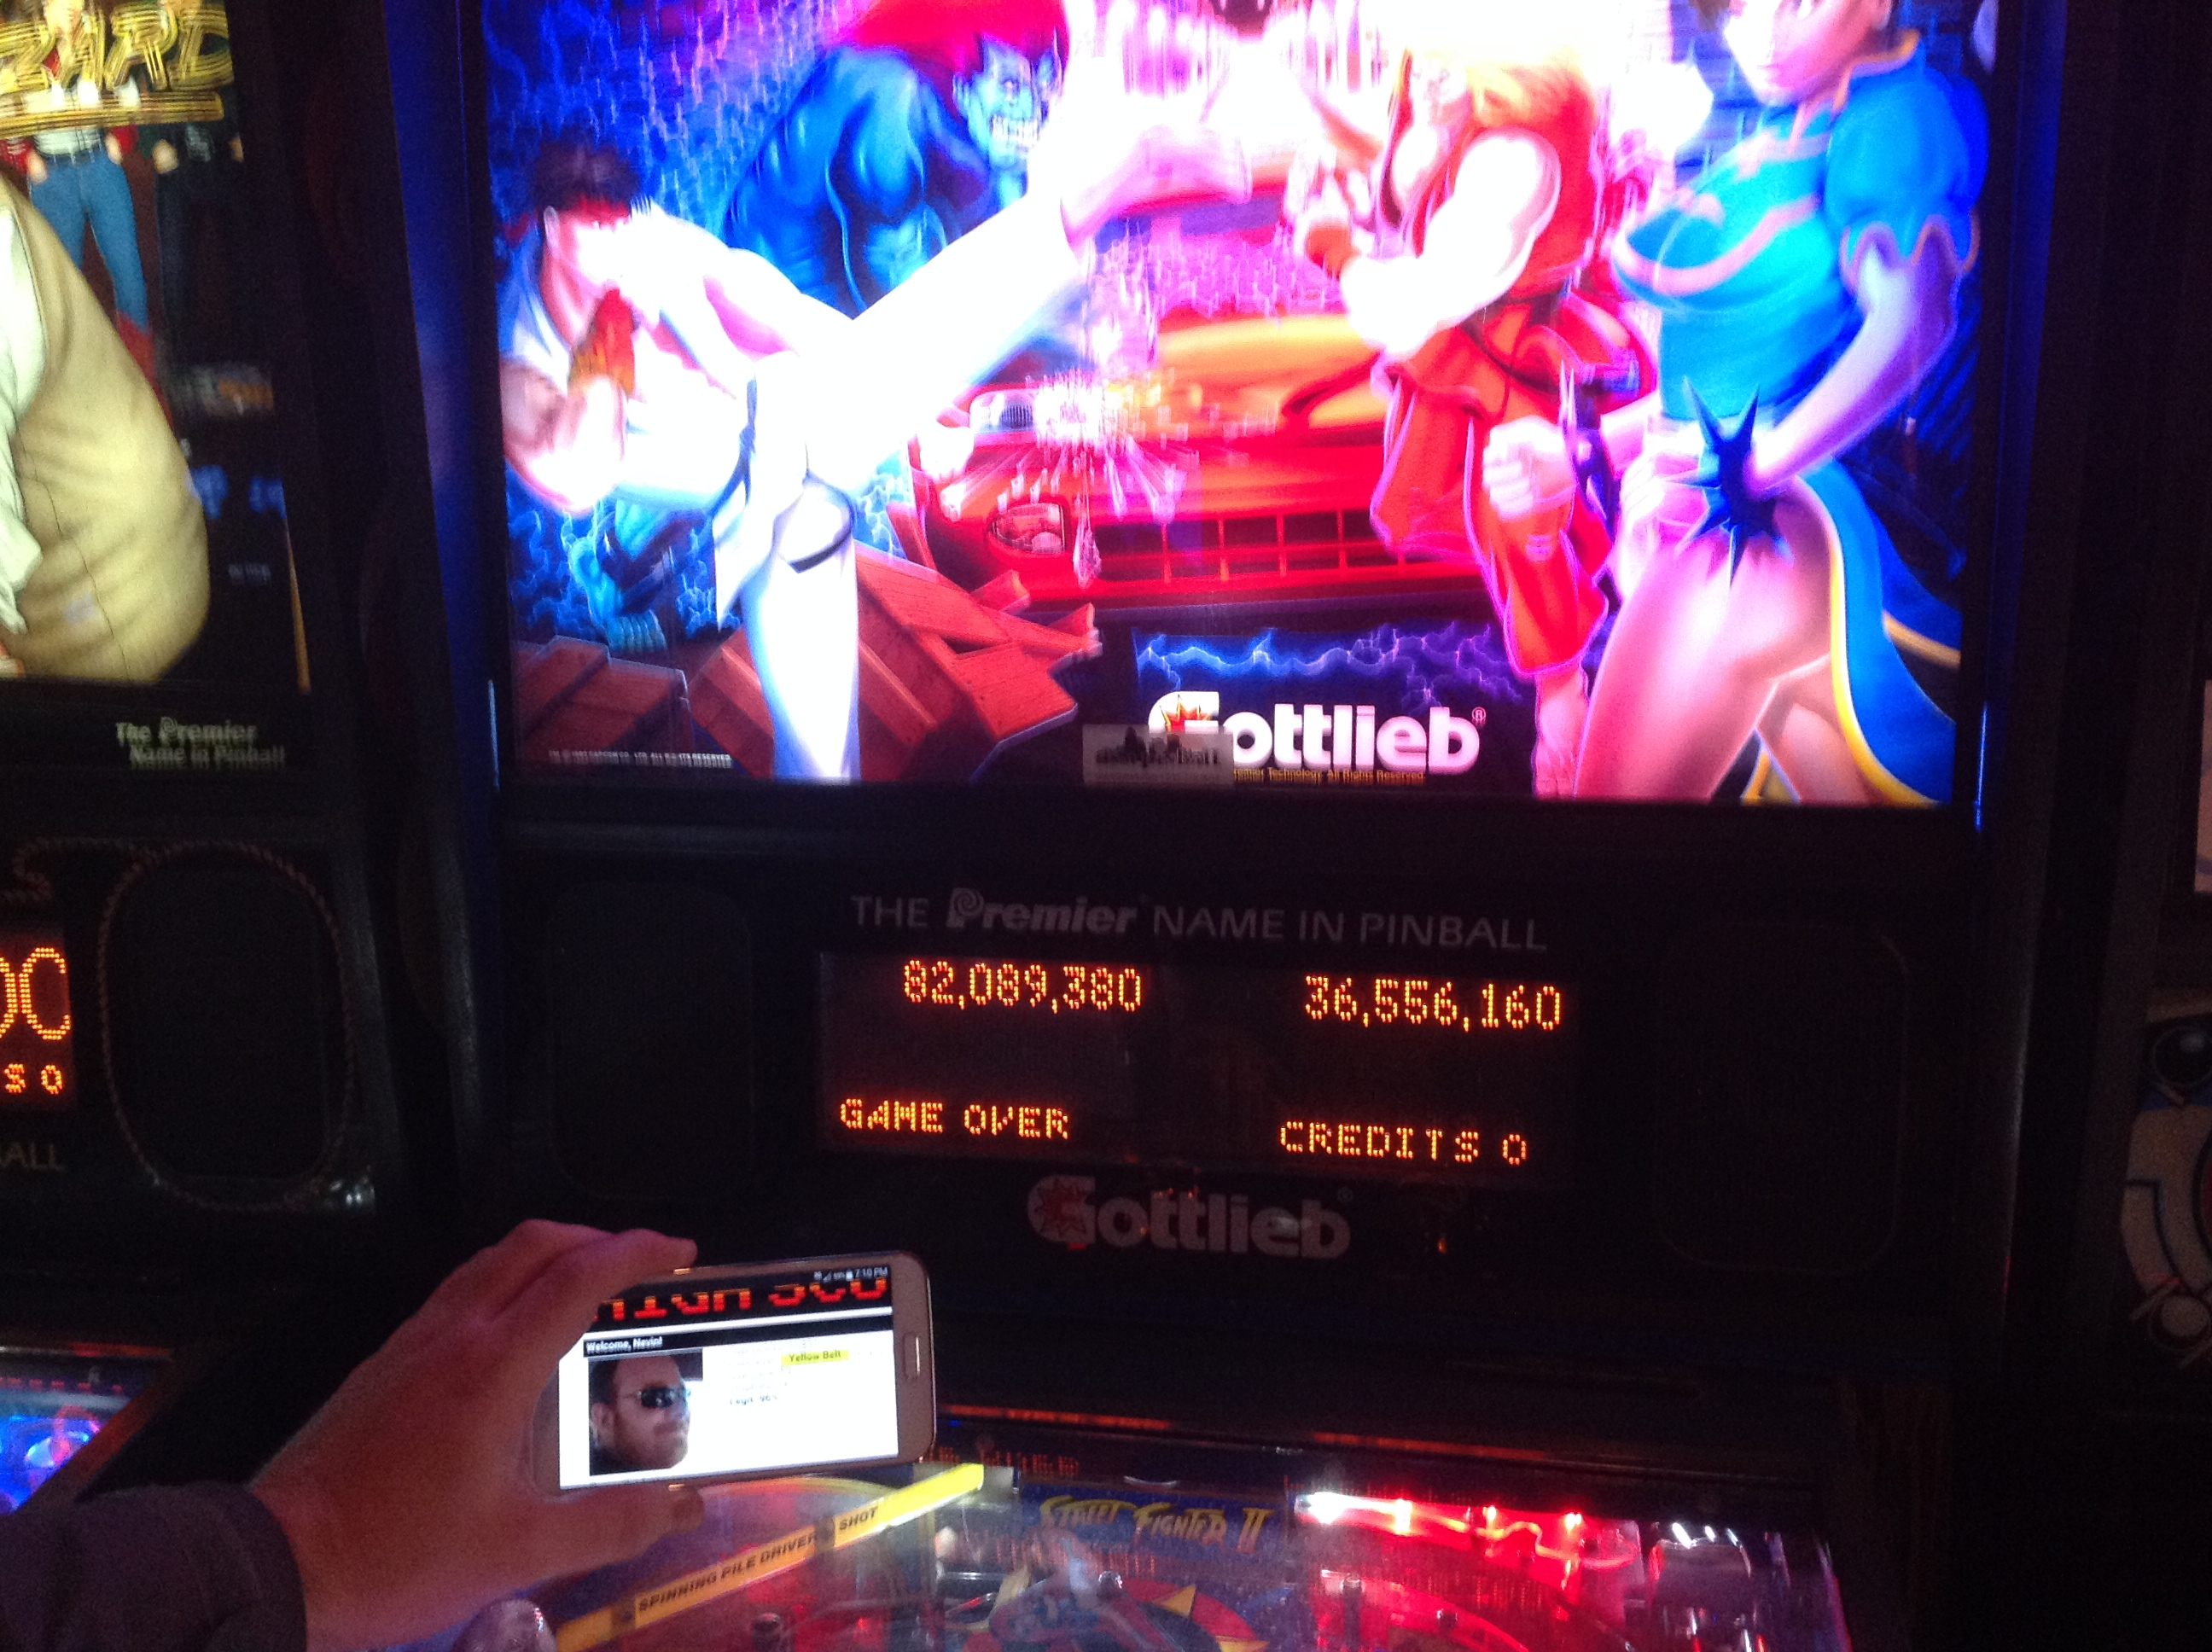 Street Fighter II 82,089,380 points